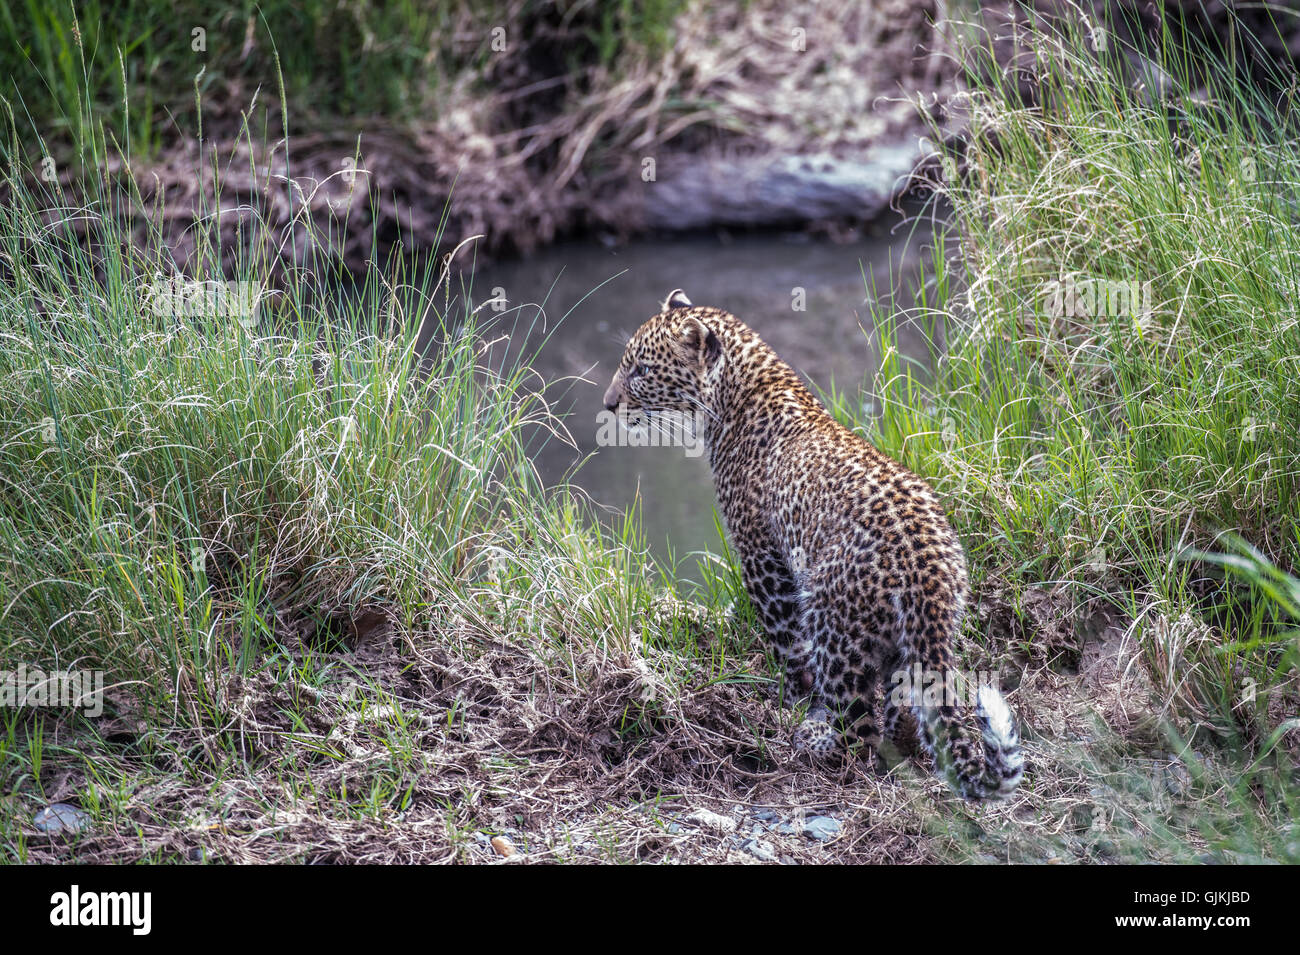 Leopard cub by river - Stock Image